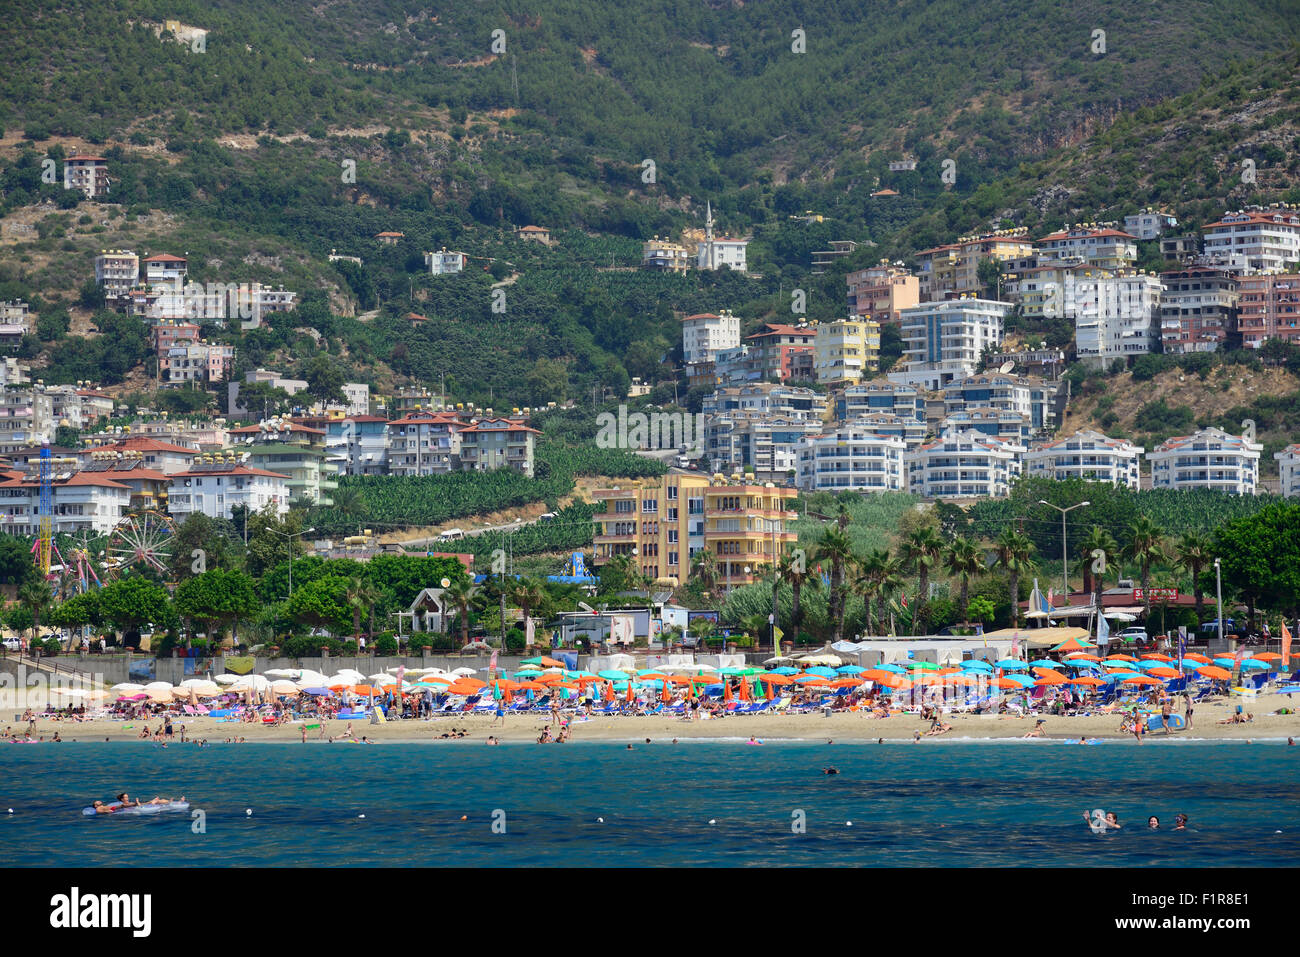 Beach and seafront in Alanya, Turkey - Stock Image